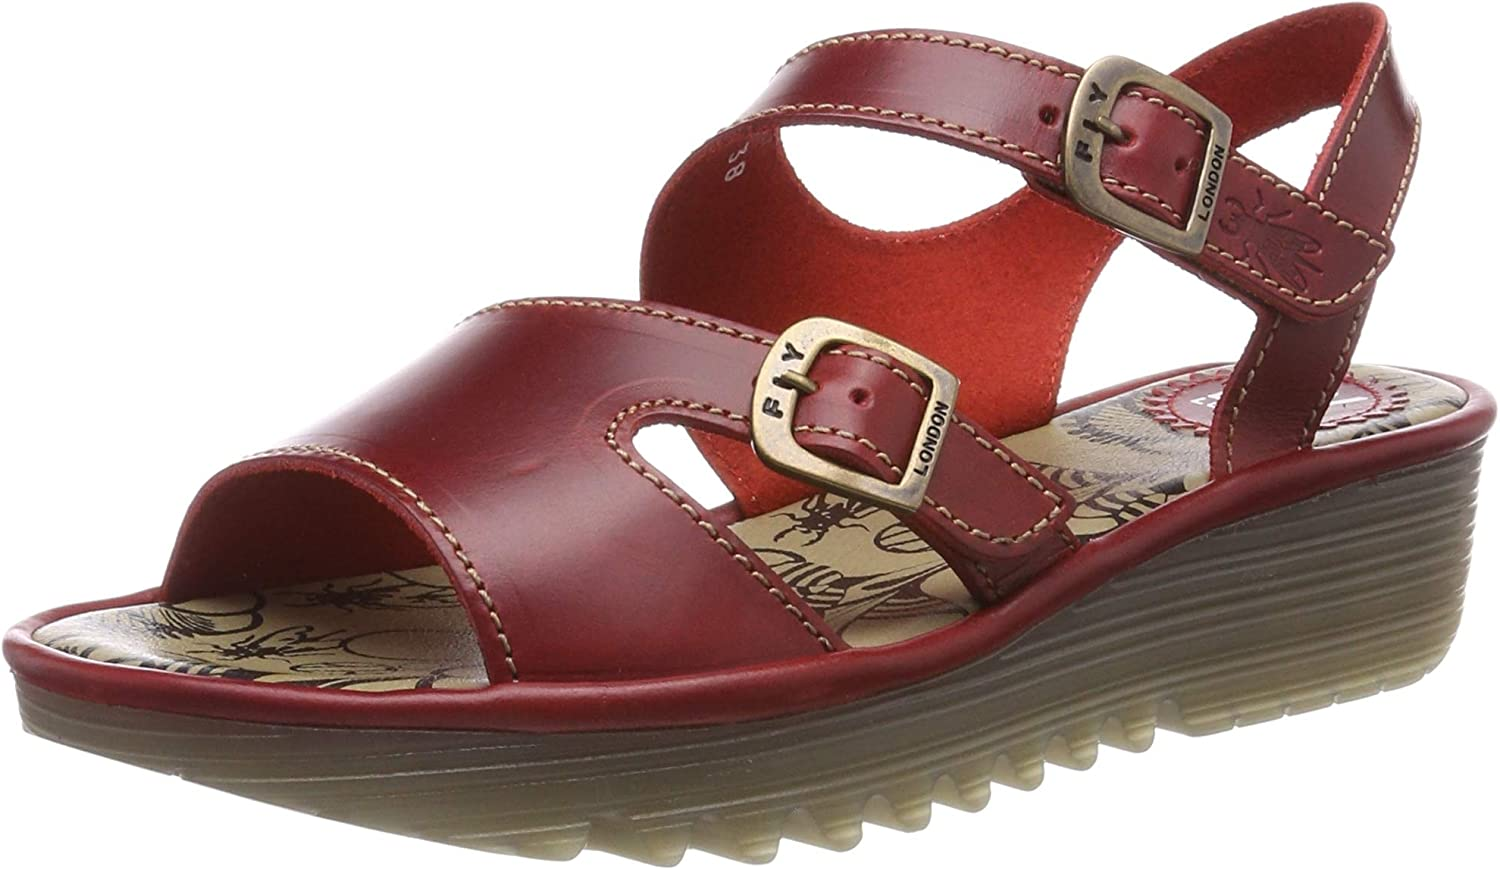 Fly London Womens Enat Bridle Summer Leather Cut Out Open Toe Sandals